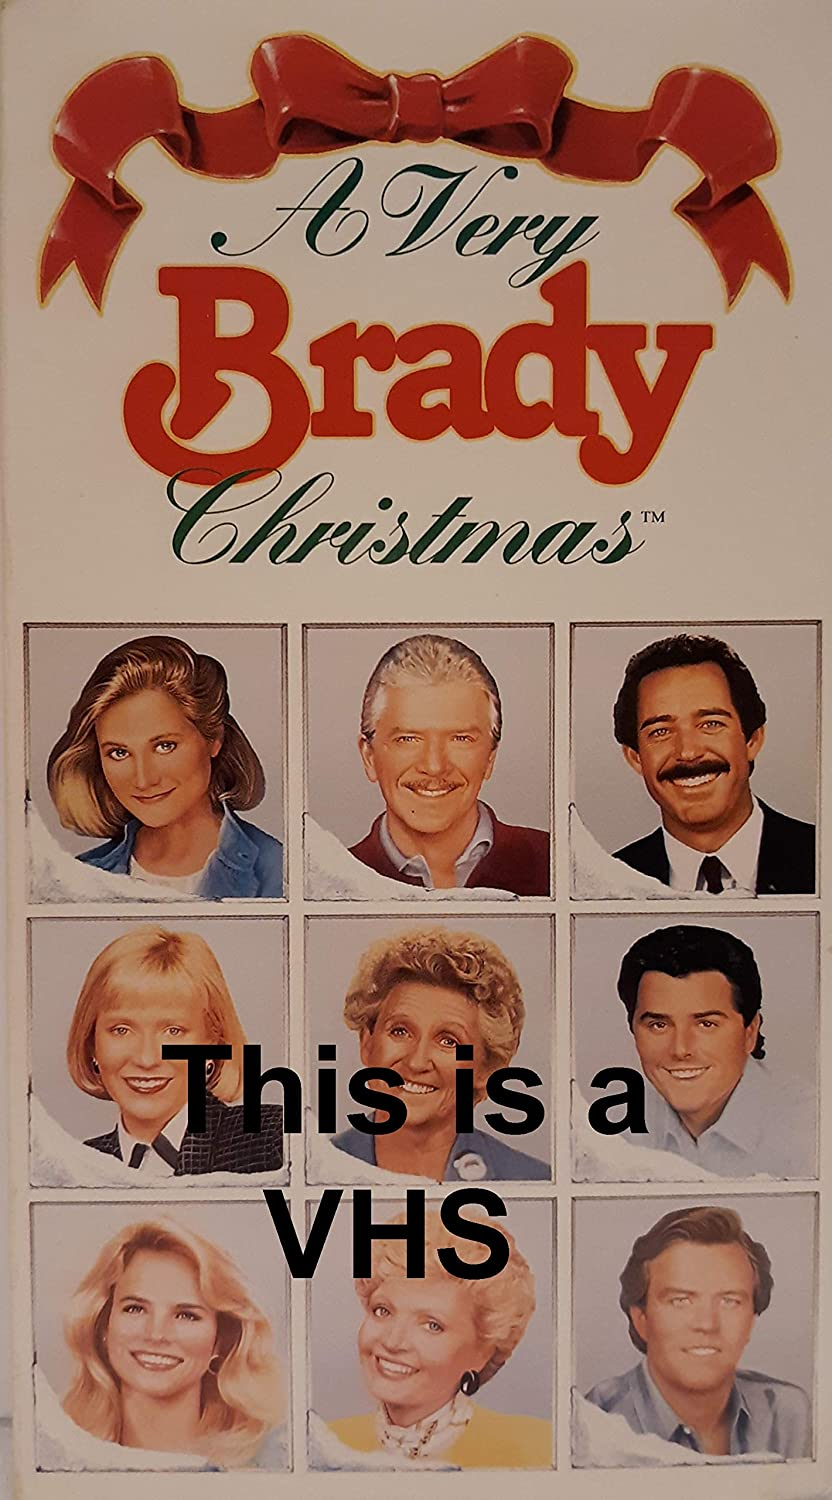 A Very Brady Christmas.Amazon Com A Very Brady Christmas Vhs This Is A Vhs